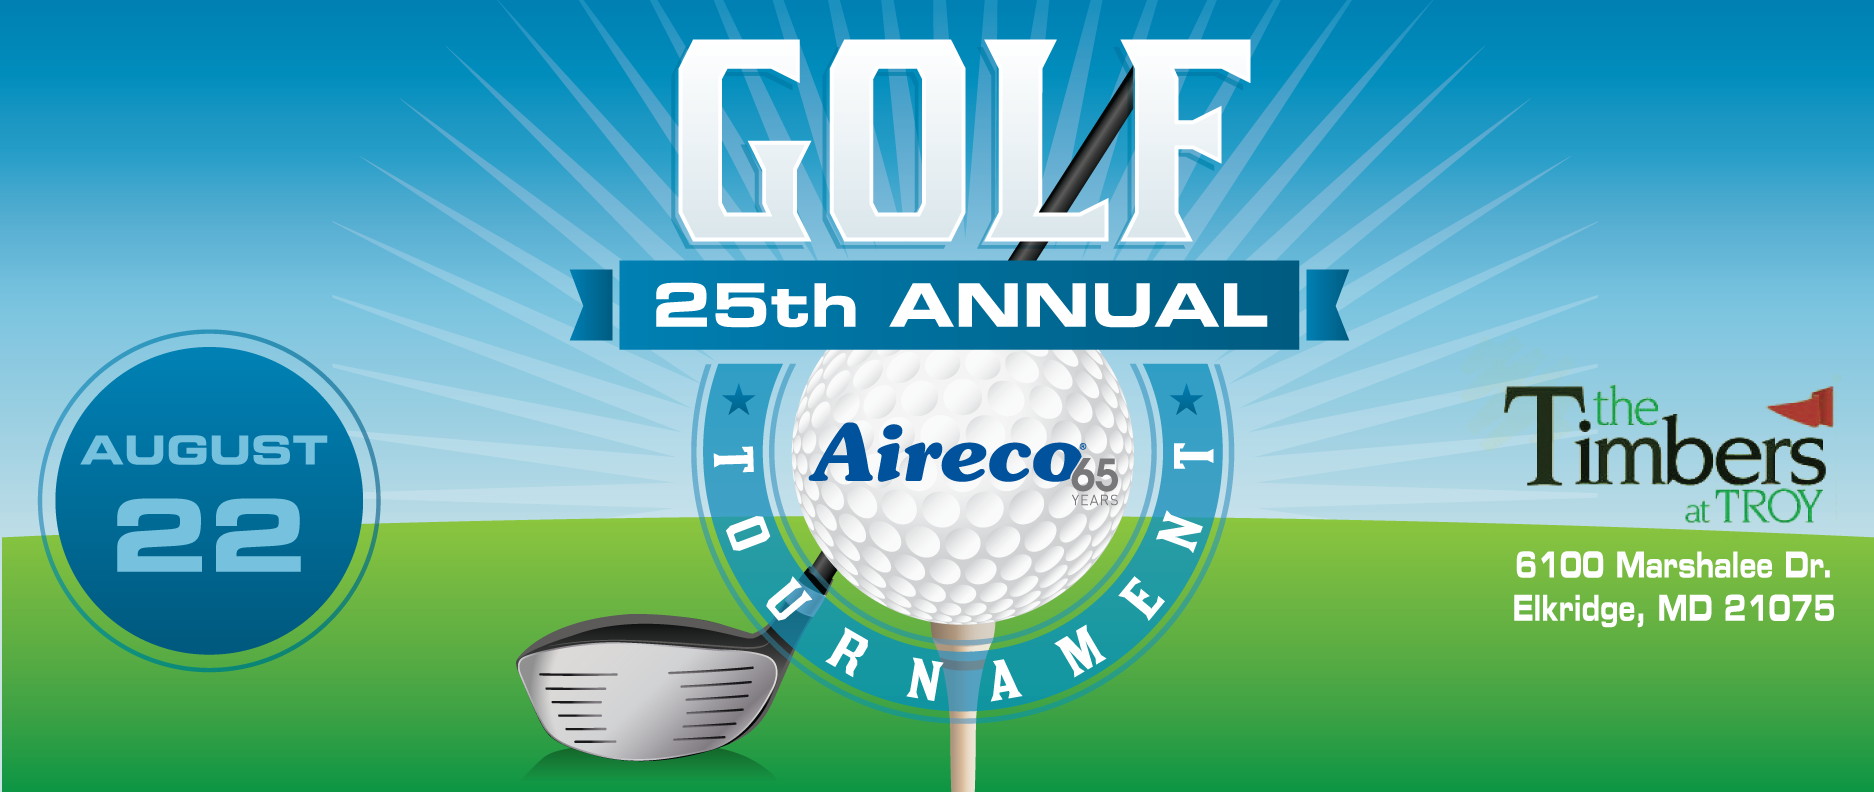 Aireco's 25th Annual Golf Invitational